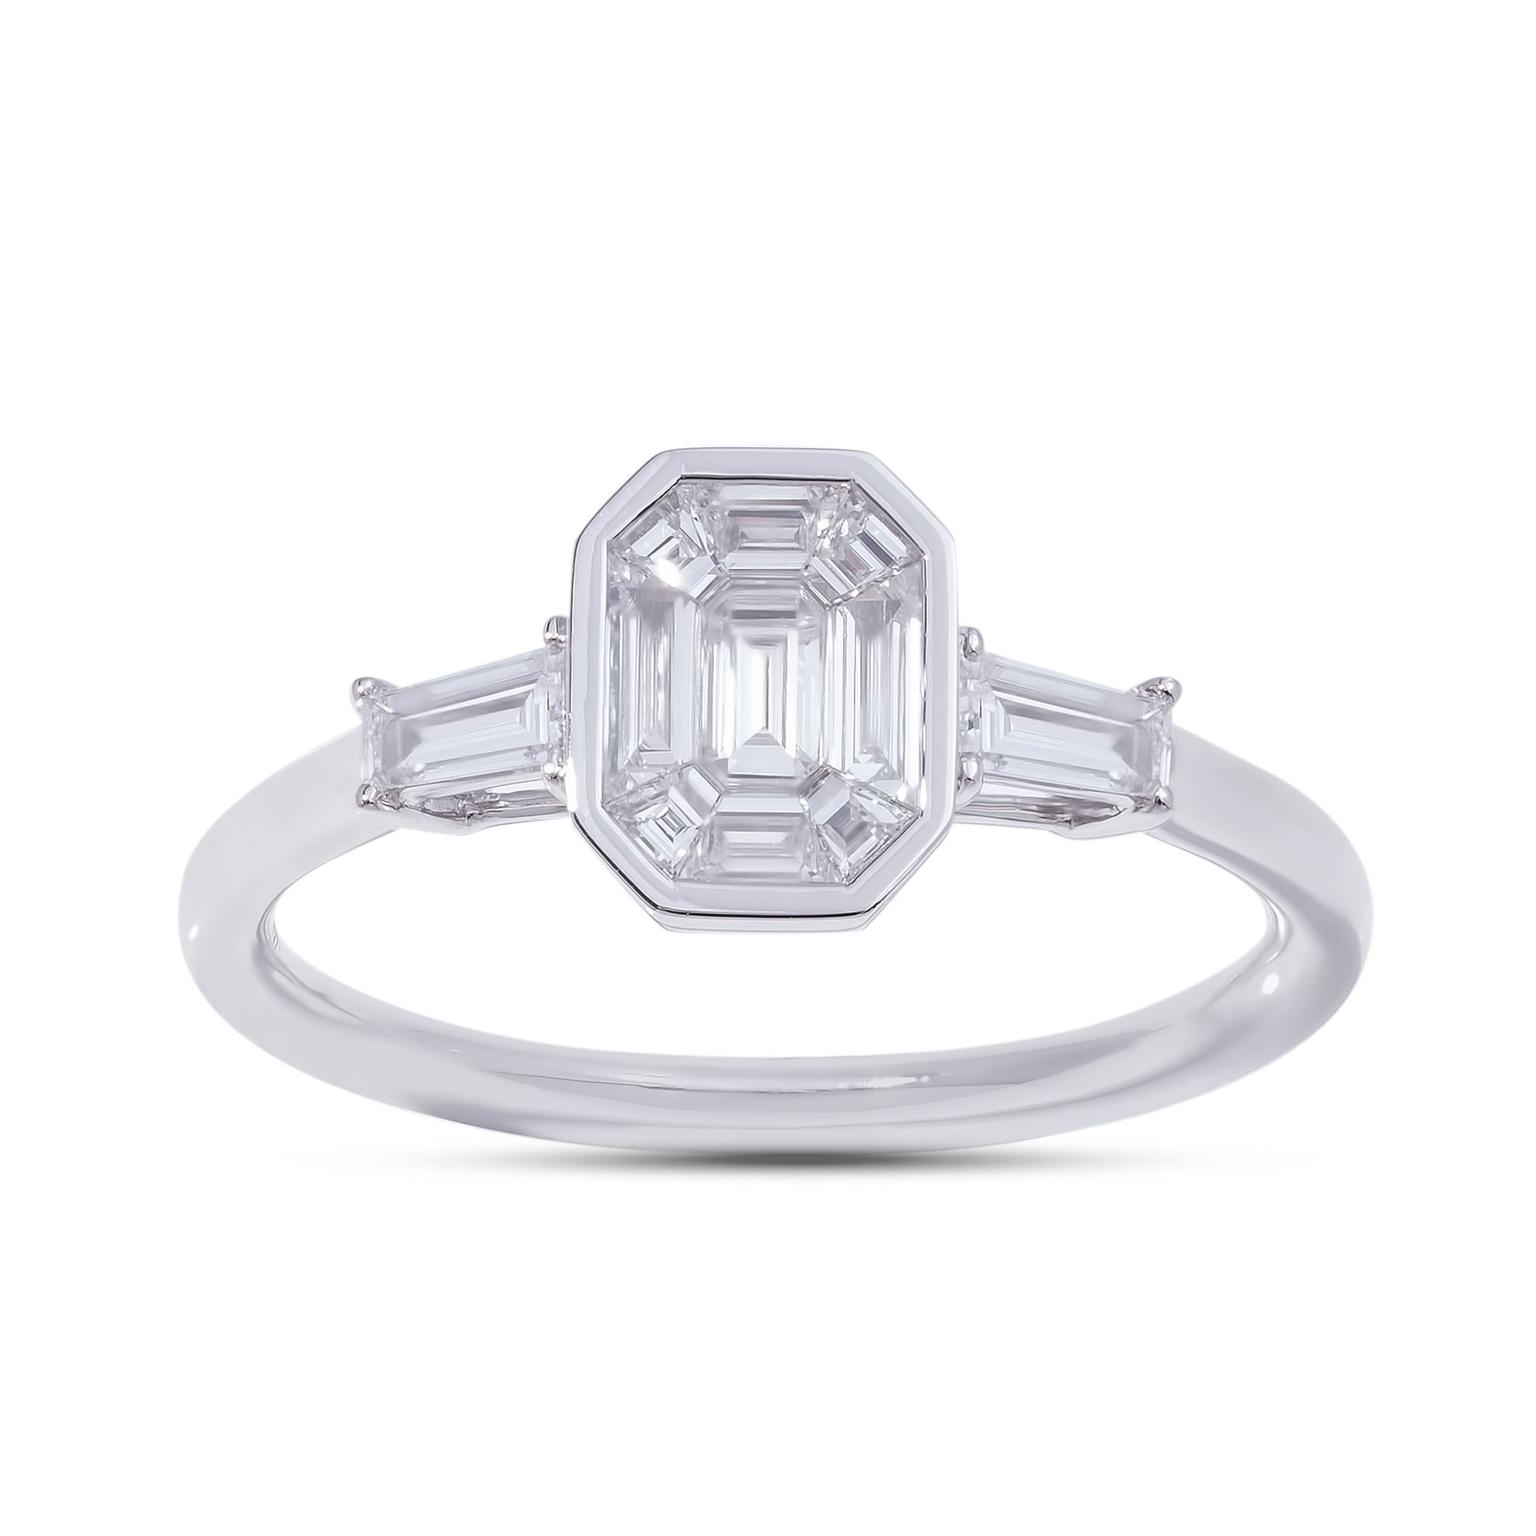 Stenzhorn solitaire 1carat look diamond ring